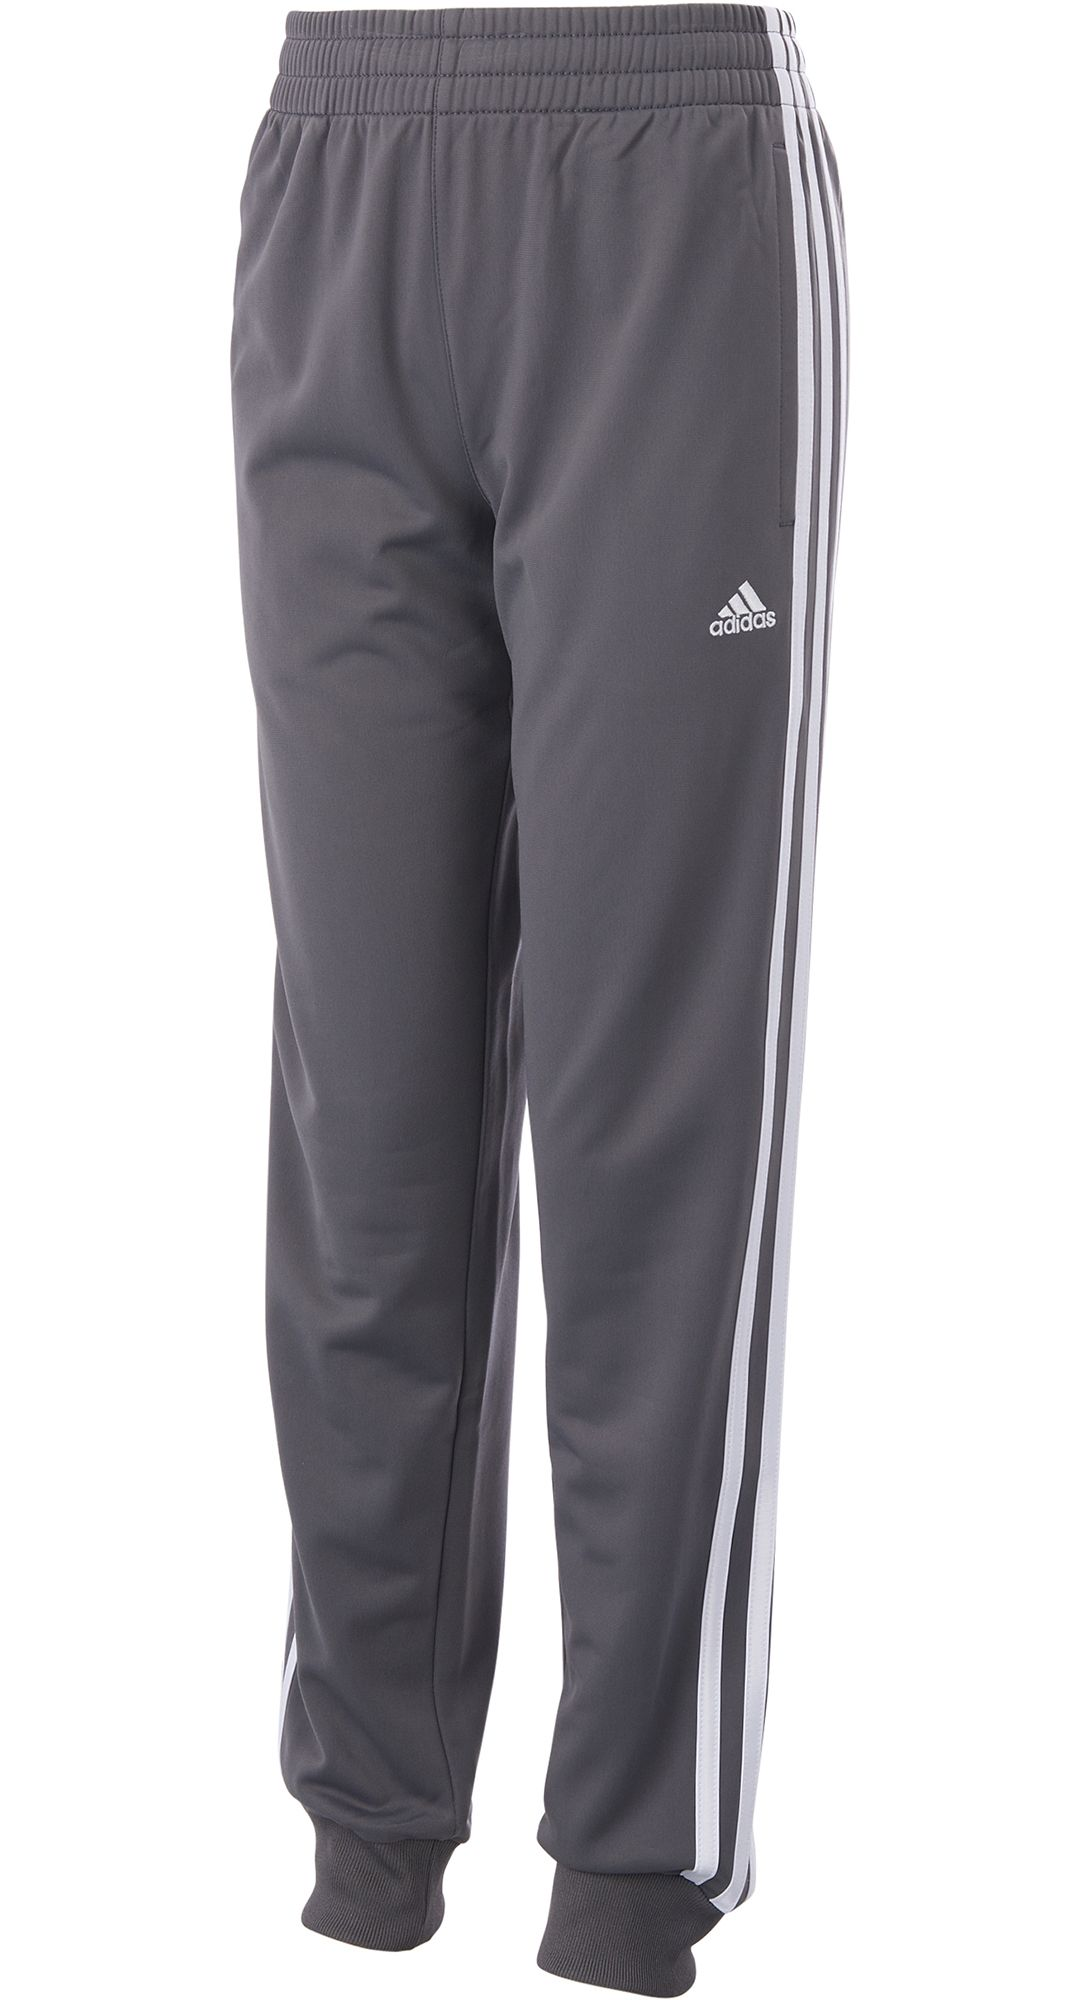 b406a012d adidas Boys' Iconic Tricot Jogger Pants | DICK'S Sporting Goods